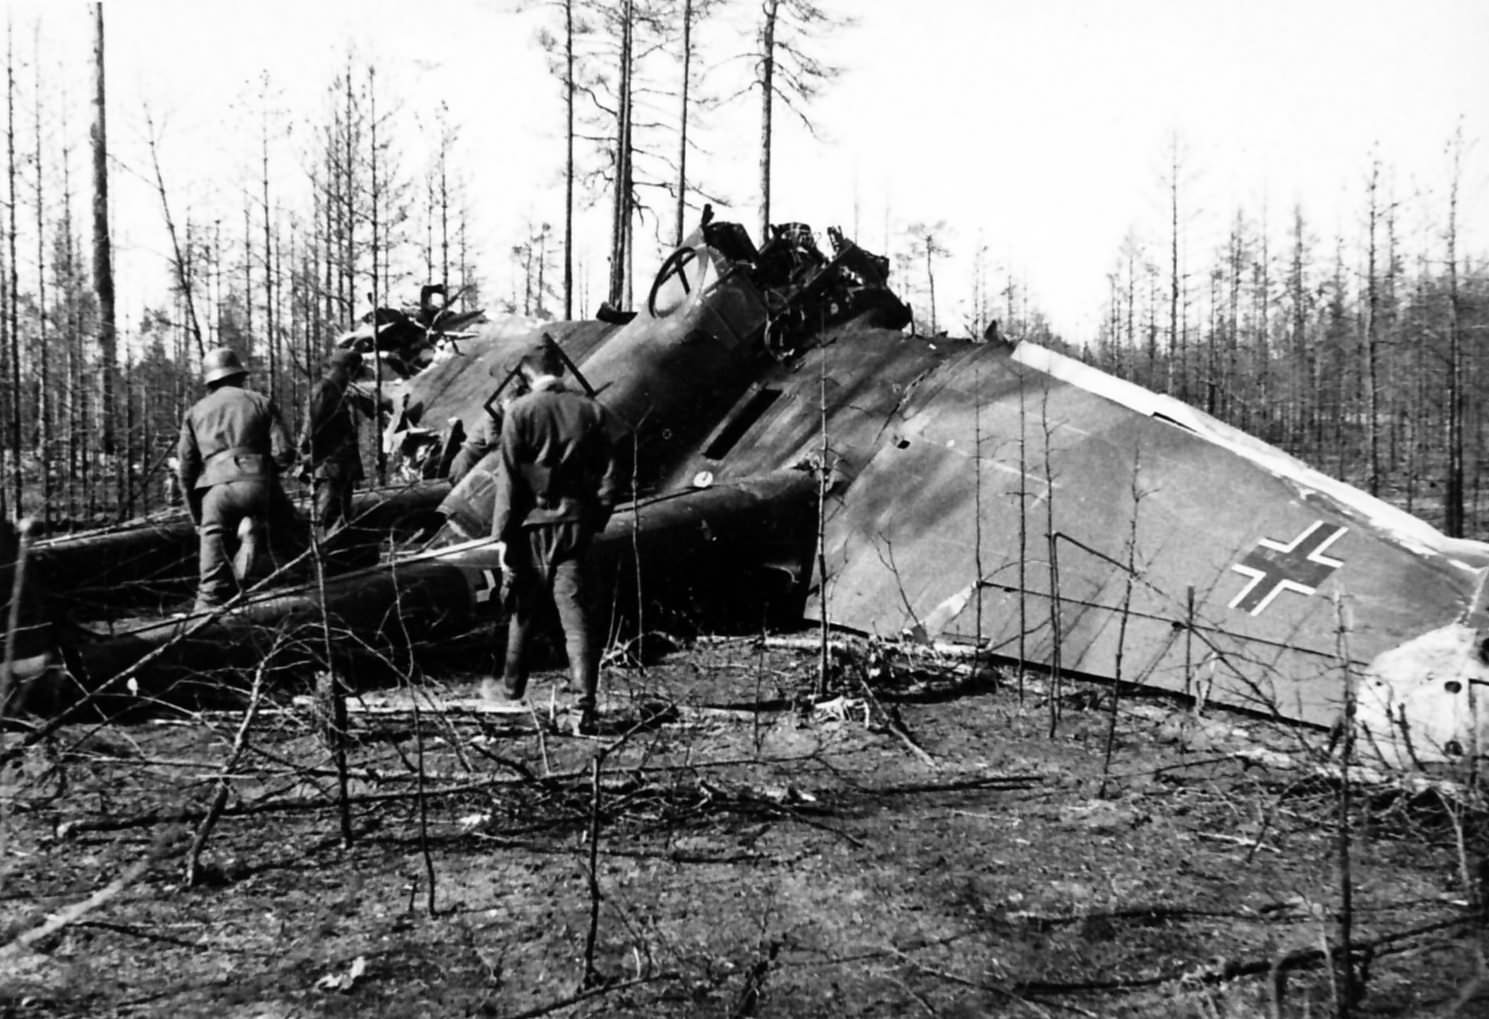 Fw189 Uhu crashed